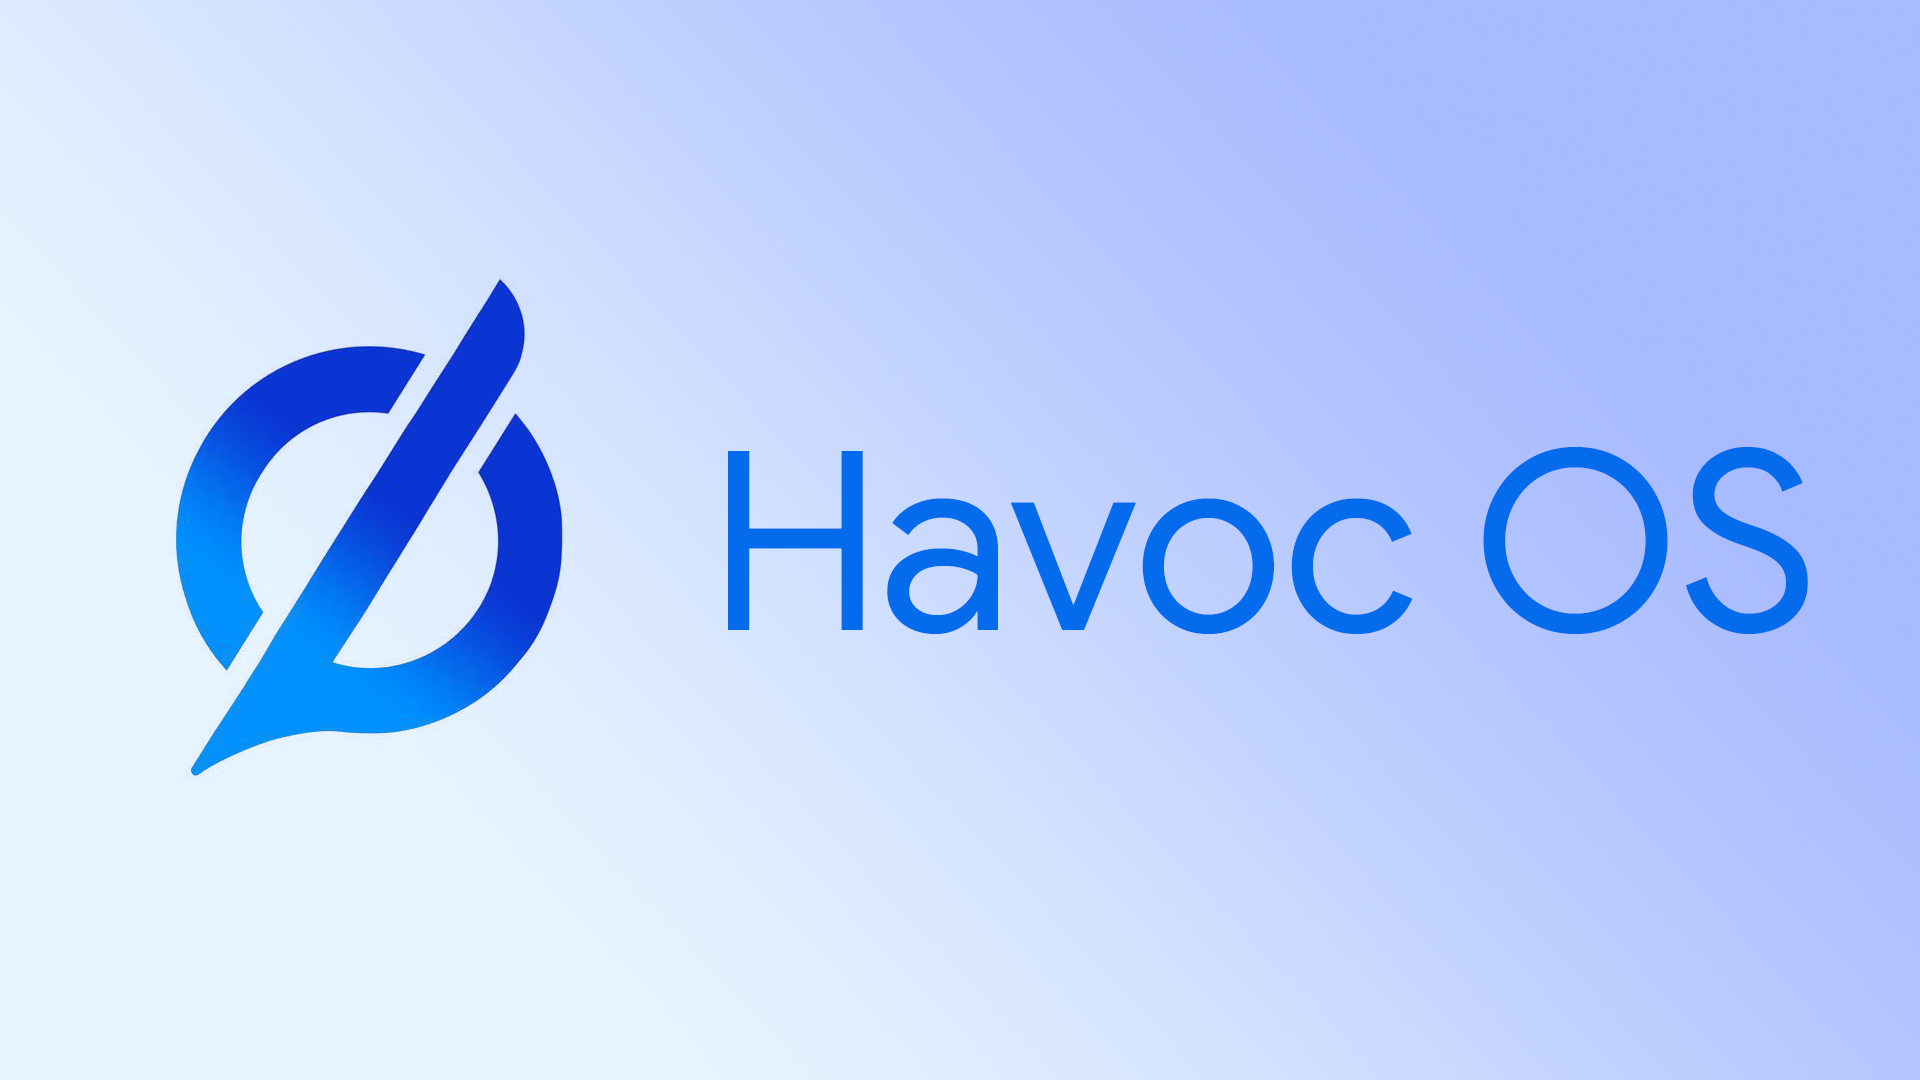 Download Havoc OS 4.1 Android 11 for Redmi Note 8